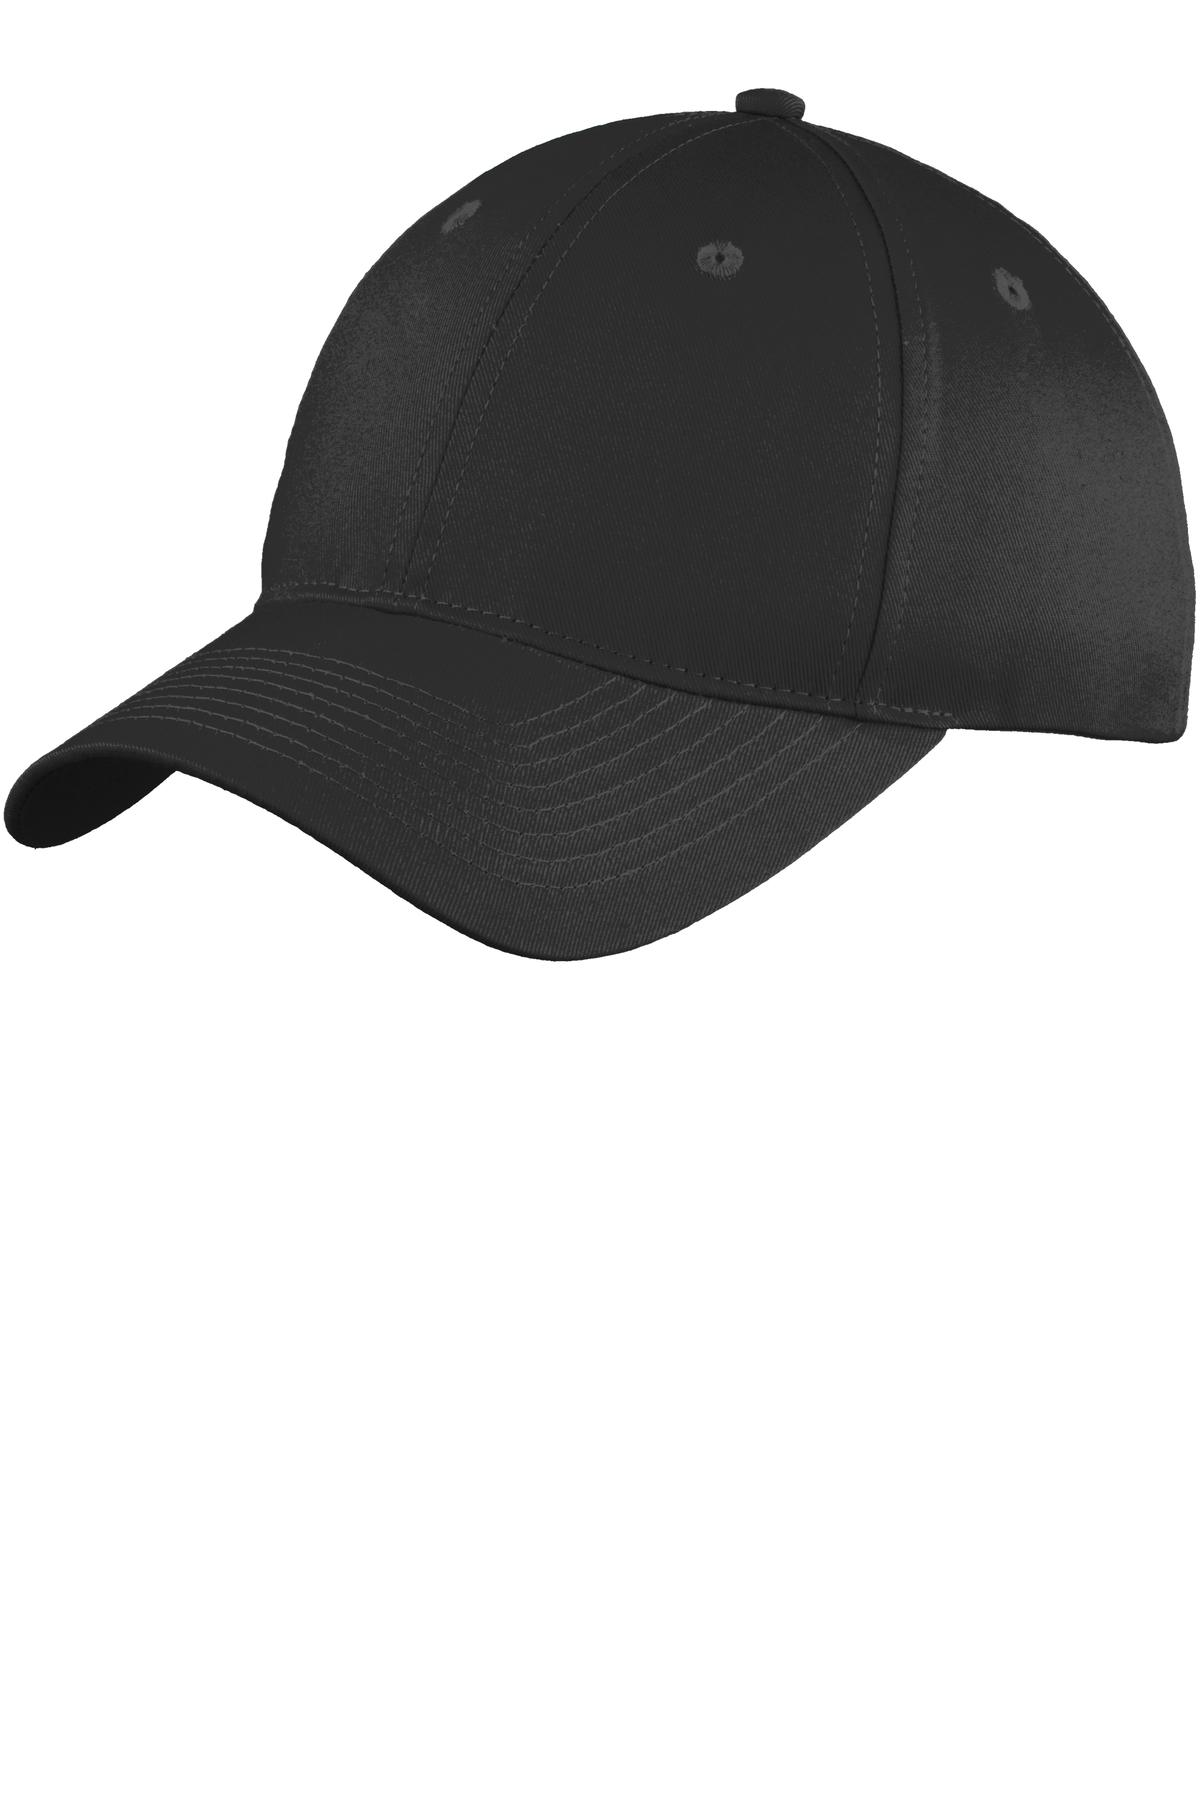 Port & Company ®  Six-Panel Unstructured Twill Cap. C914 - Black